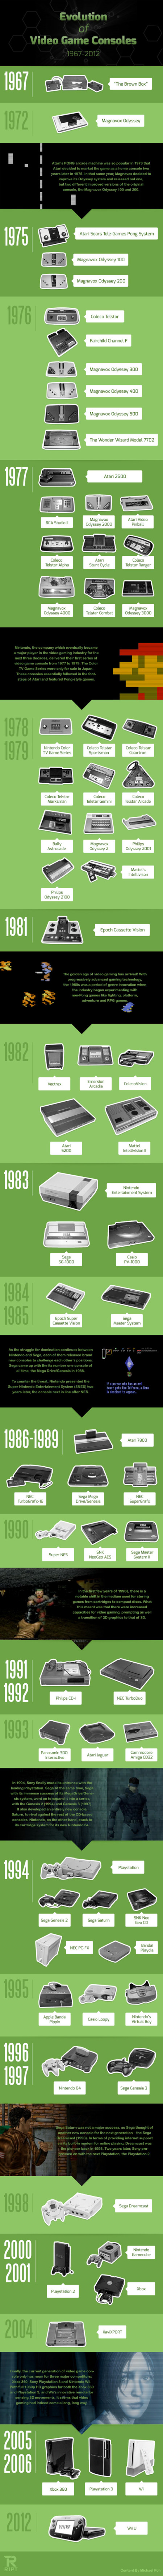 video-game-evolution-infographic